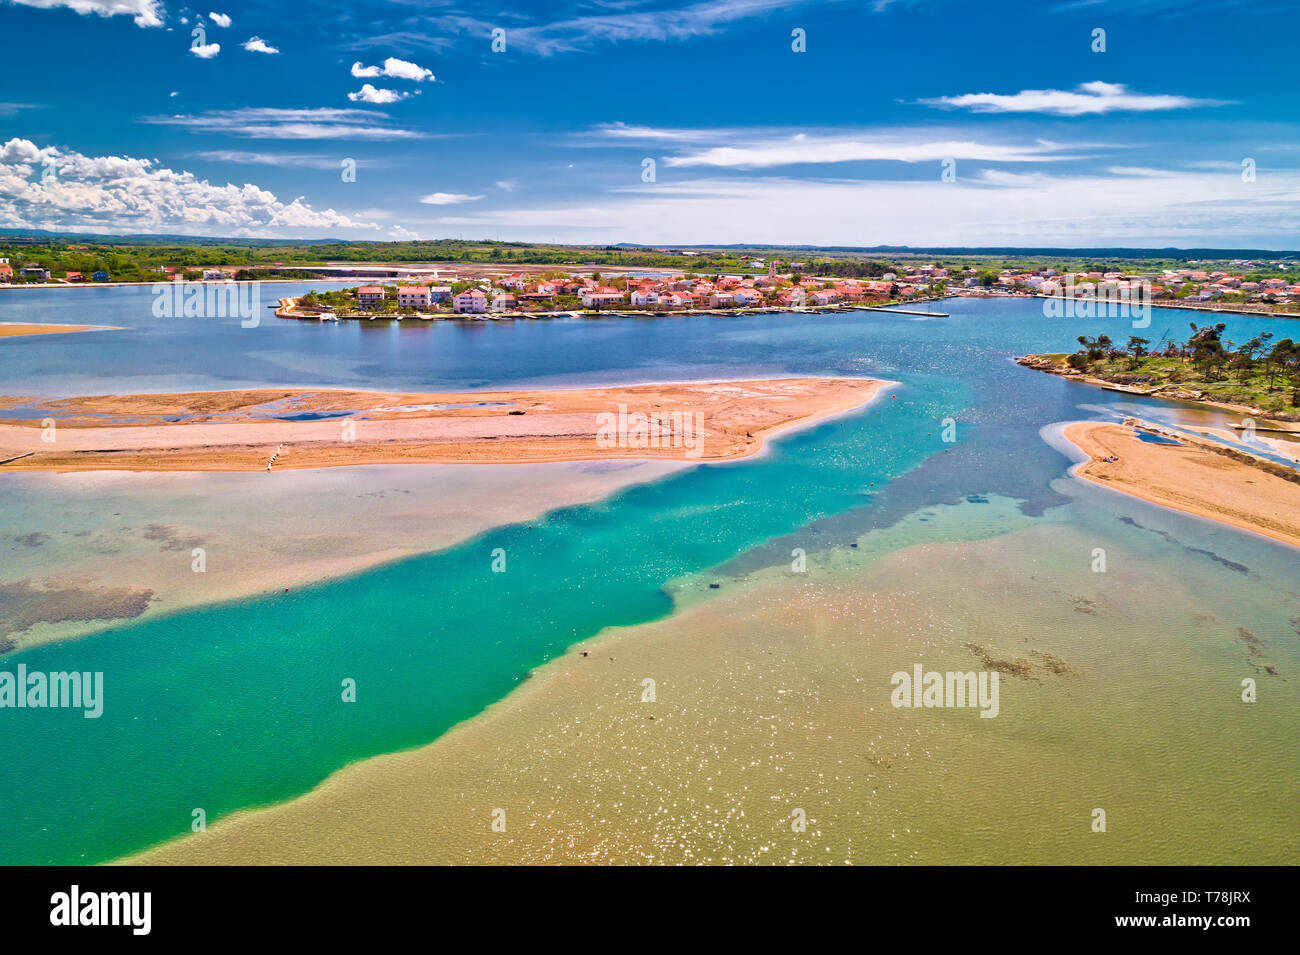 Historic town of Nin laguna and beach sandbars aerial view, Dalmatia region of Croatia Stock Photo